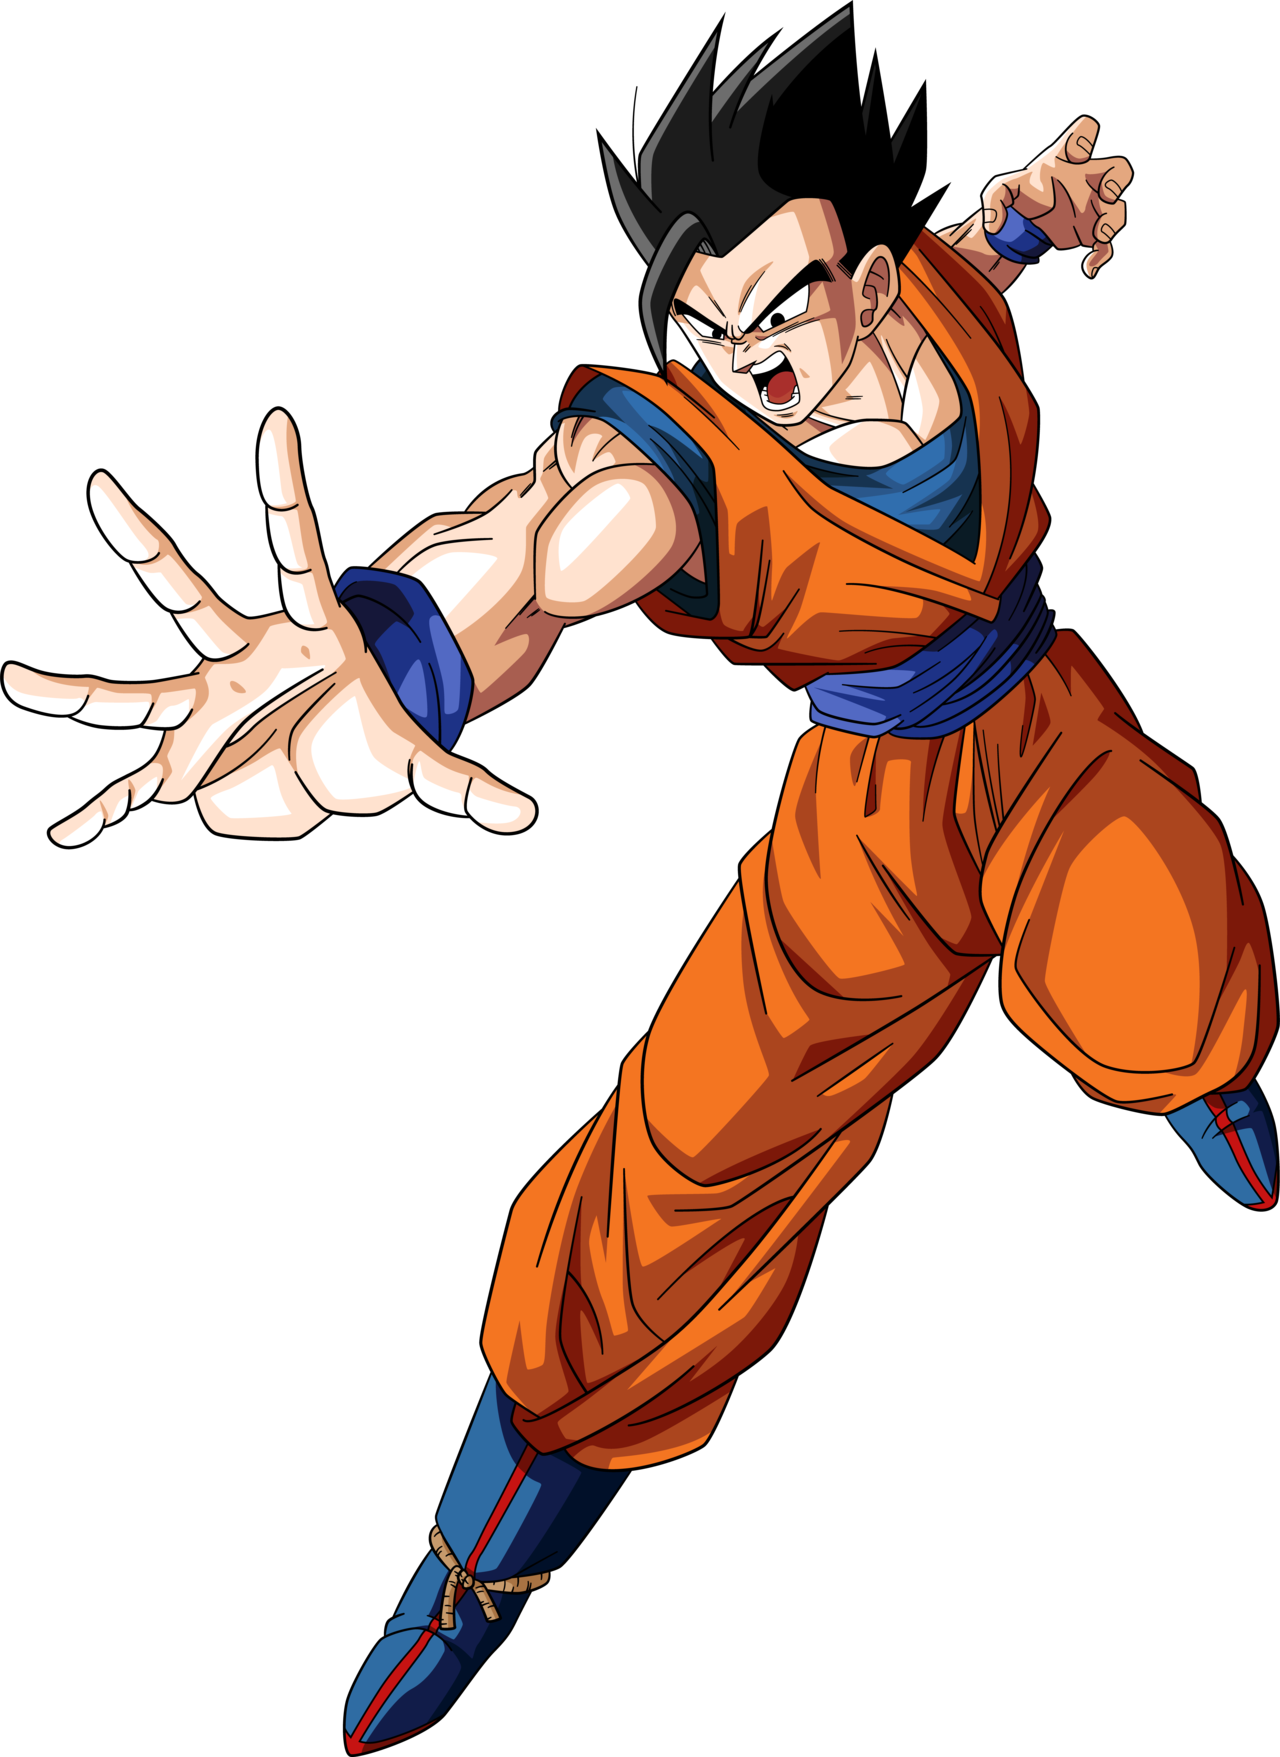 Gohan dbs r dragonball fanon wiki fandom powered by - Dragon ball z gohan images ...